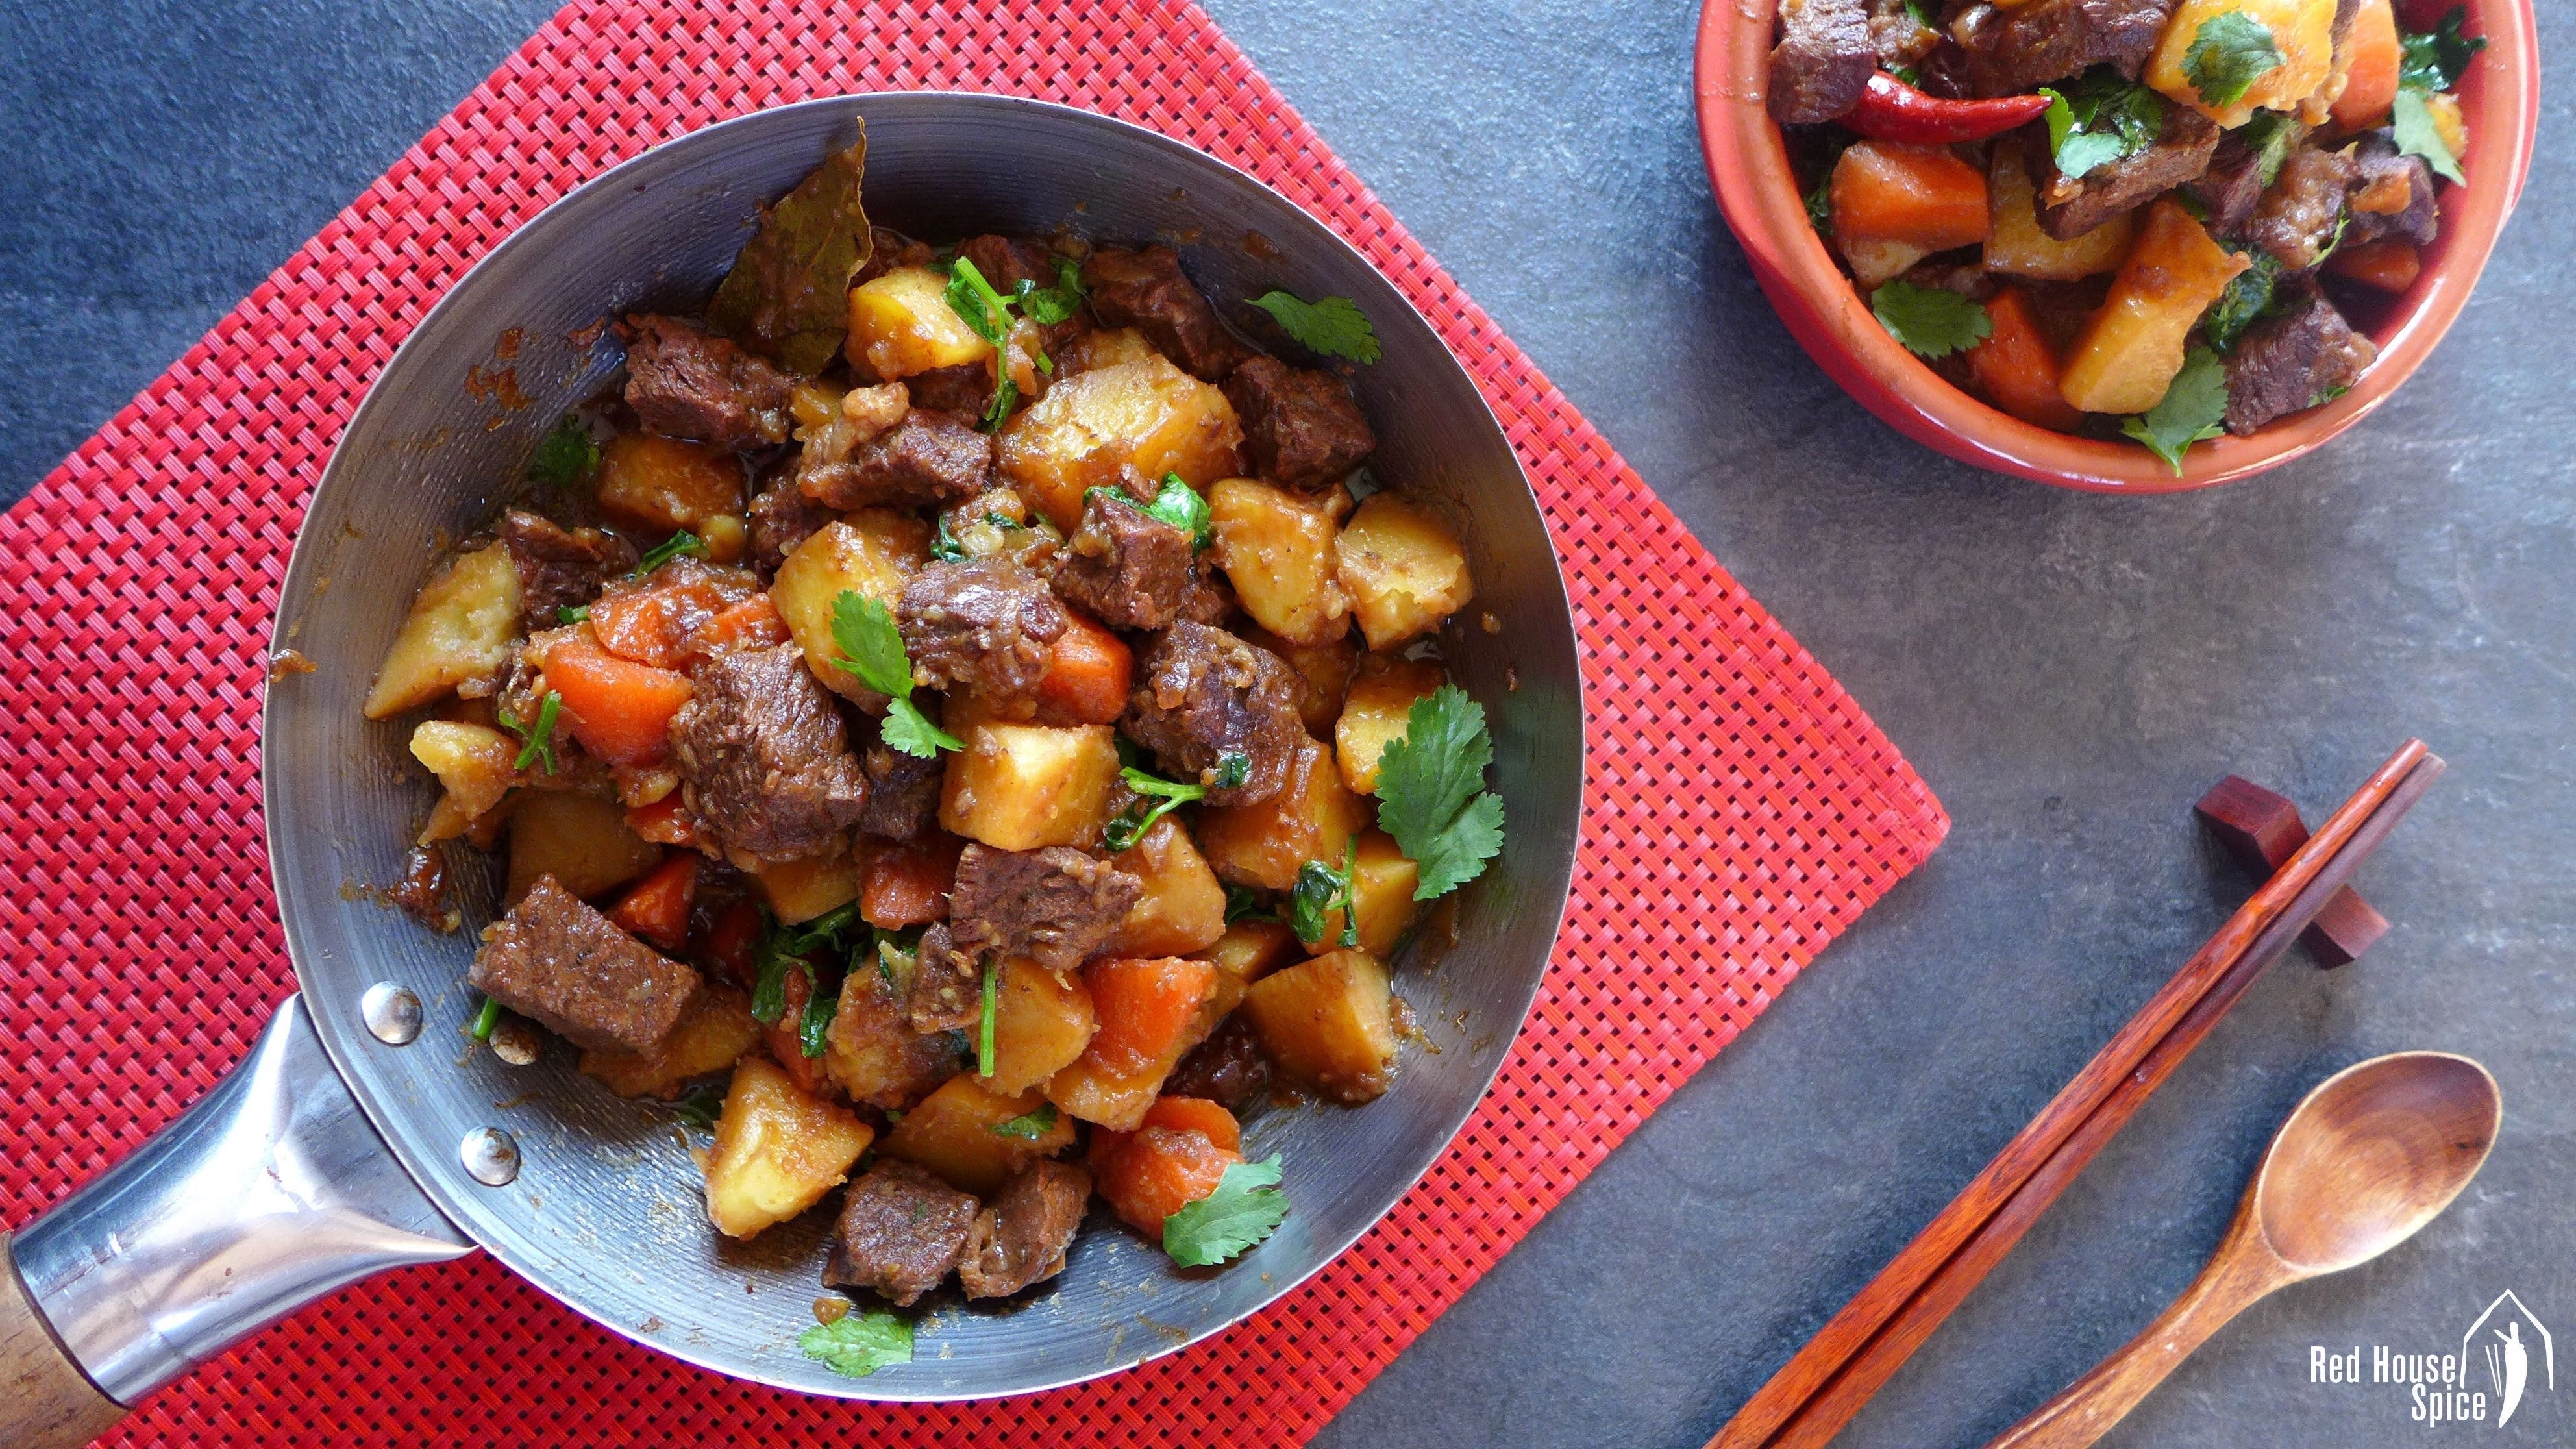 Beef And Potato Stew  Chinese spiced beef and potato stew 土豆炖牛肉 – Red House Spice